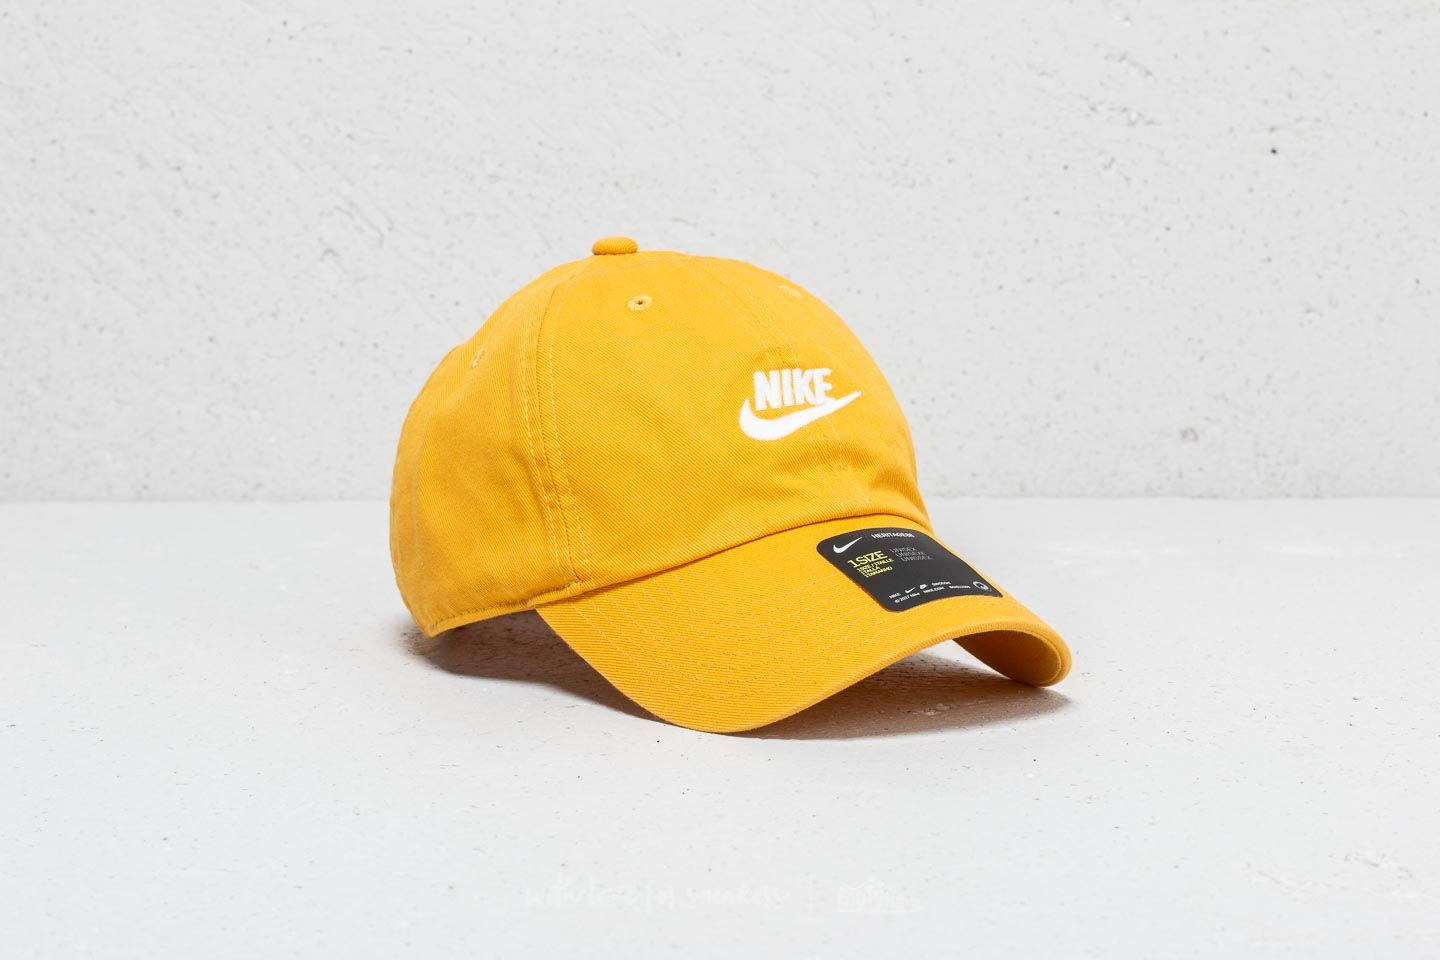 ace0db3552089 Nike Heritage 86 Futura Washed Cap Yellow